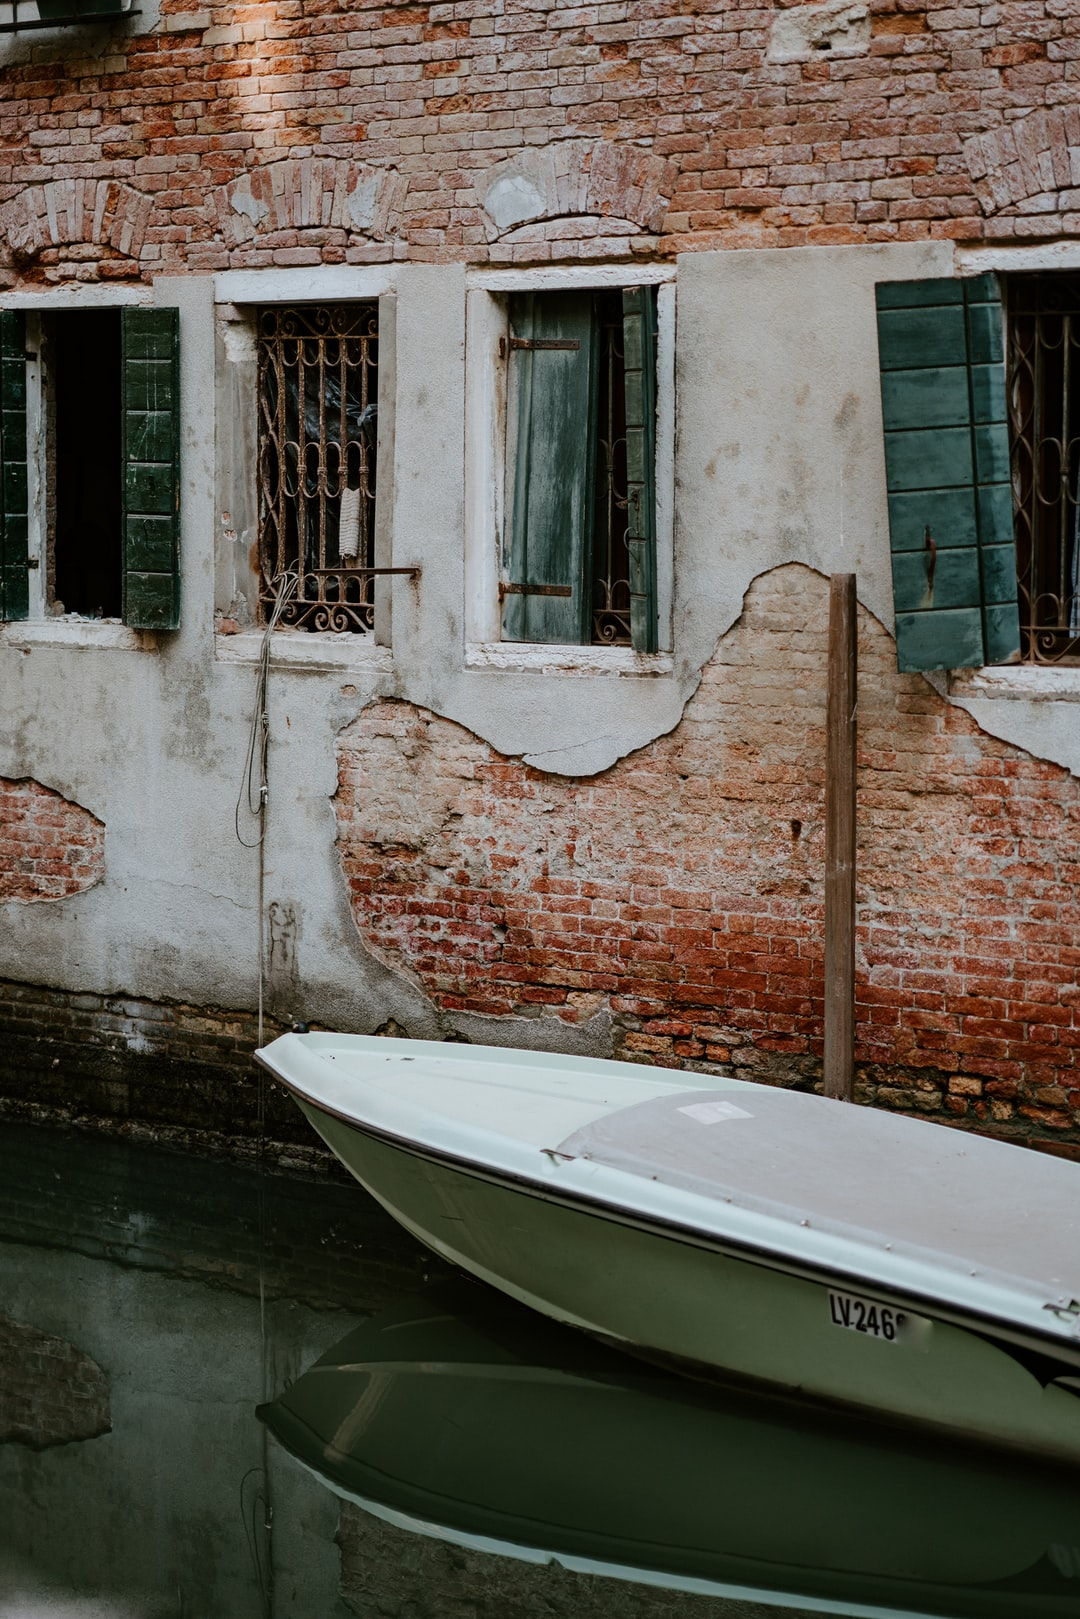 Boat moored by a worn brick wall in Venice